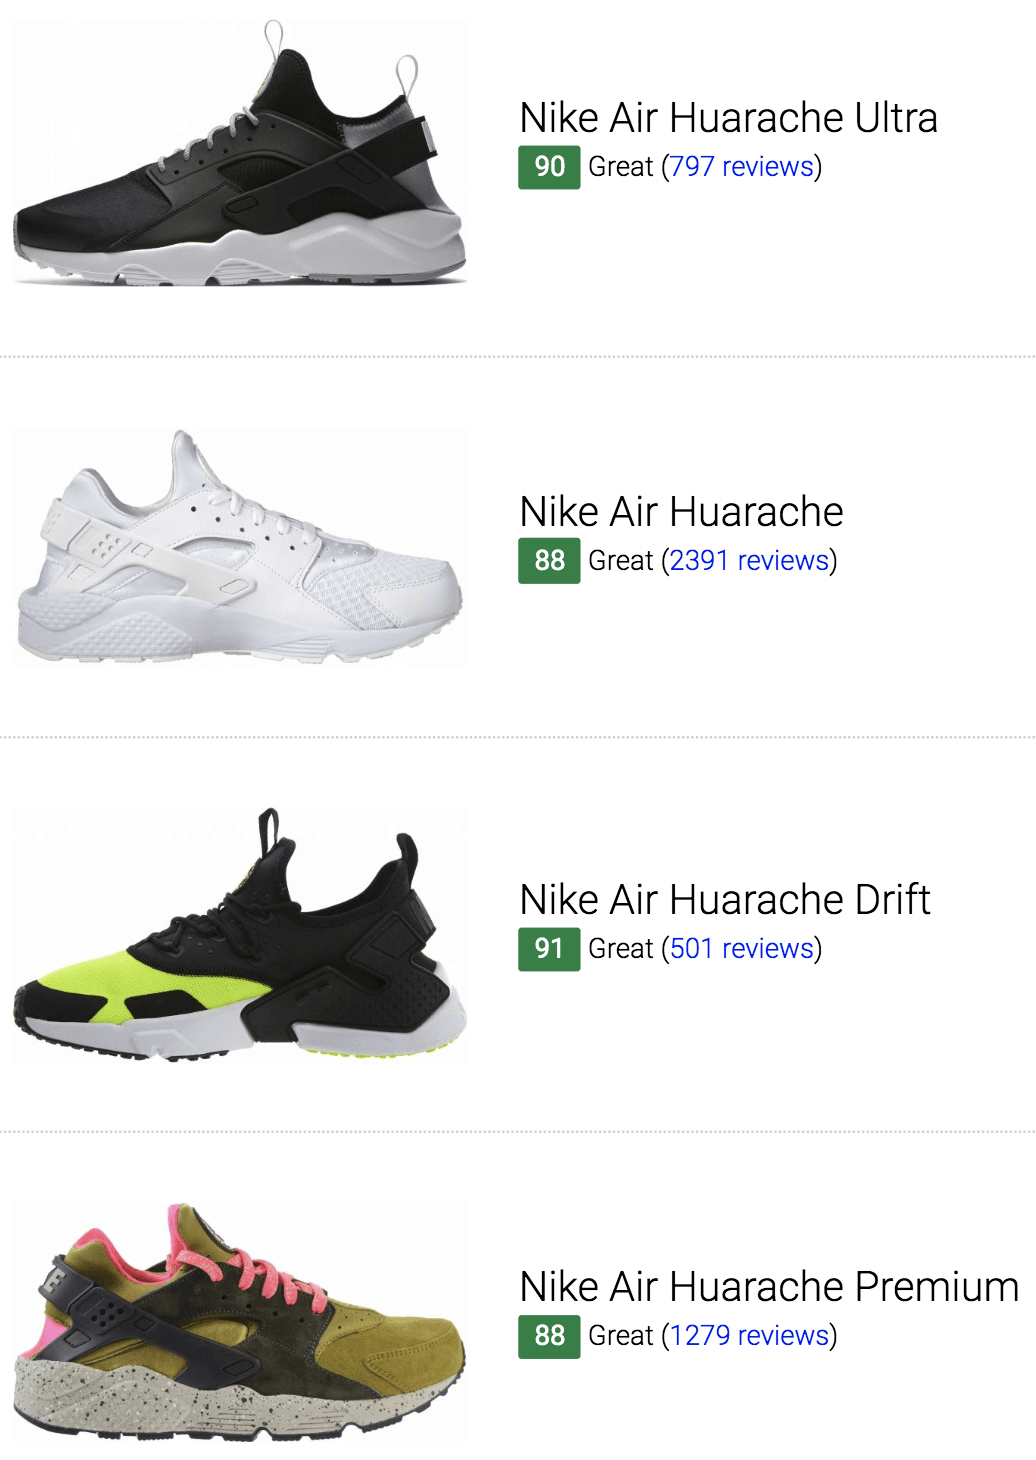 Best Nike Air Huarache Sneakers